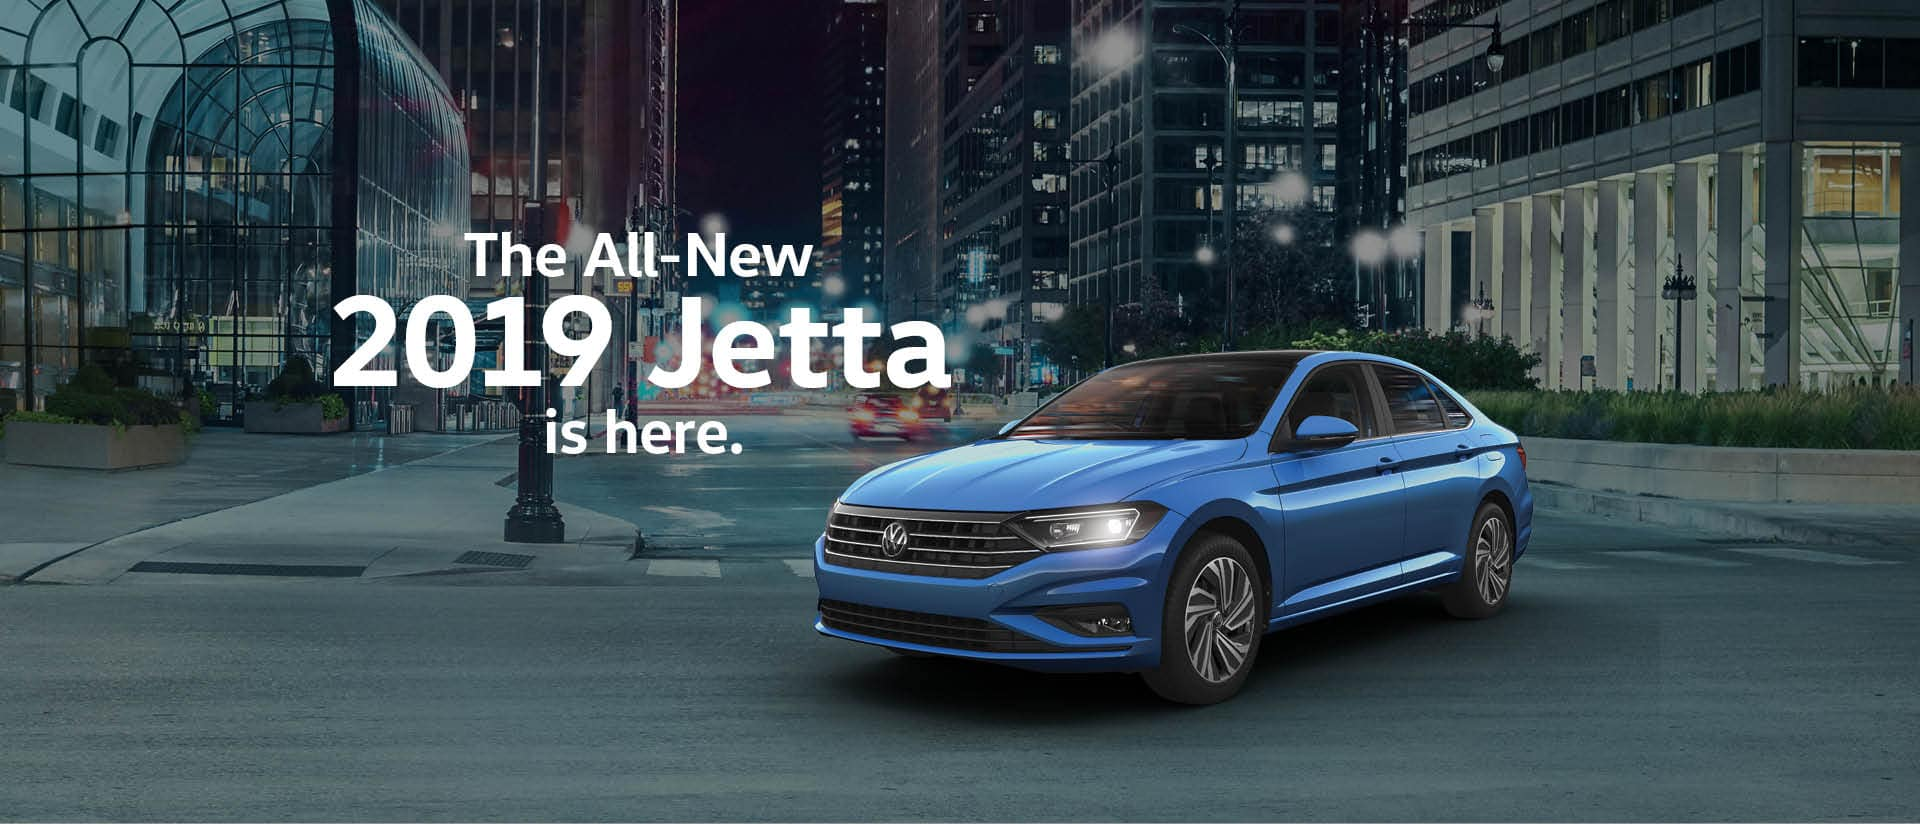 The all-new 2019 Jetta is here